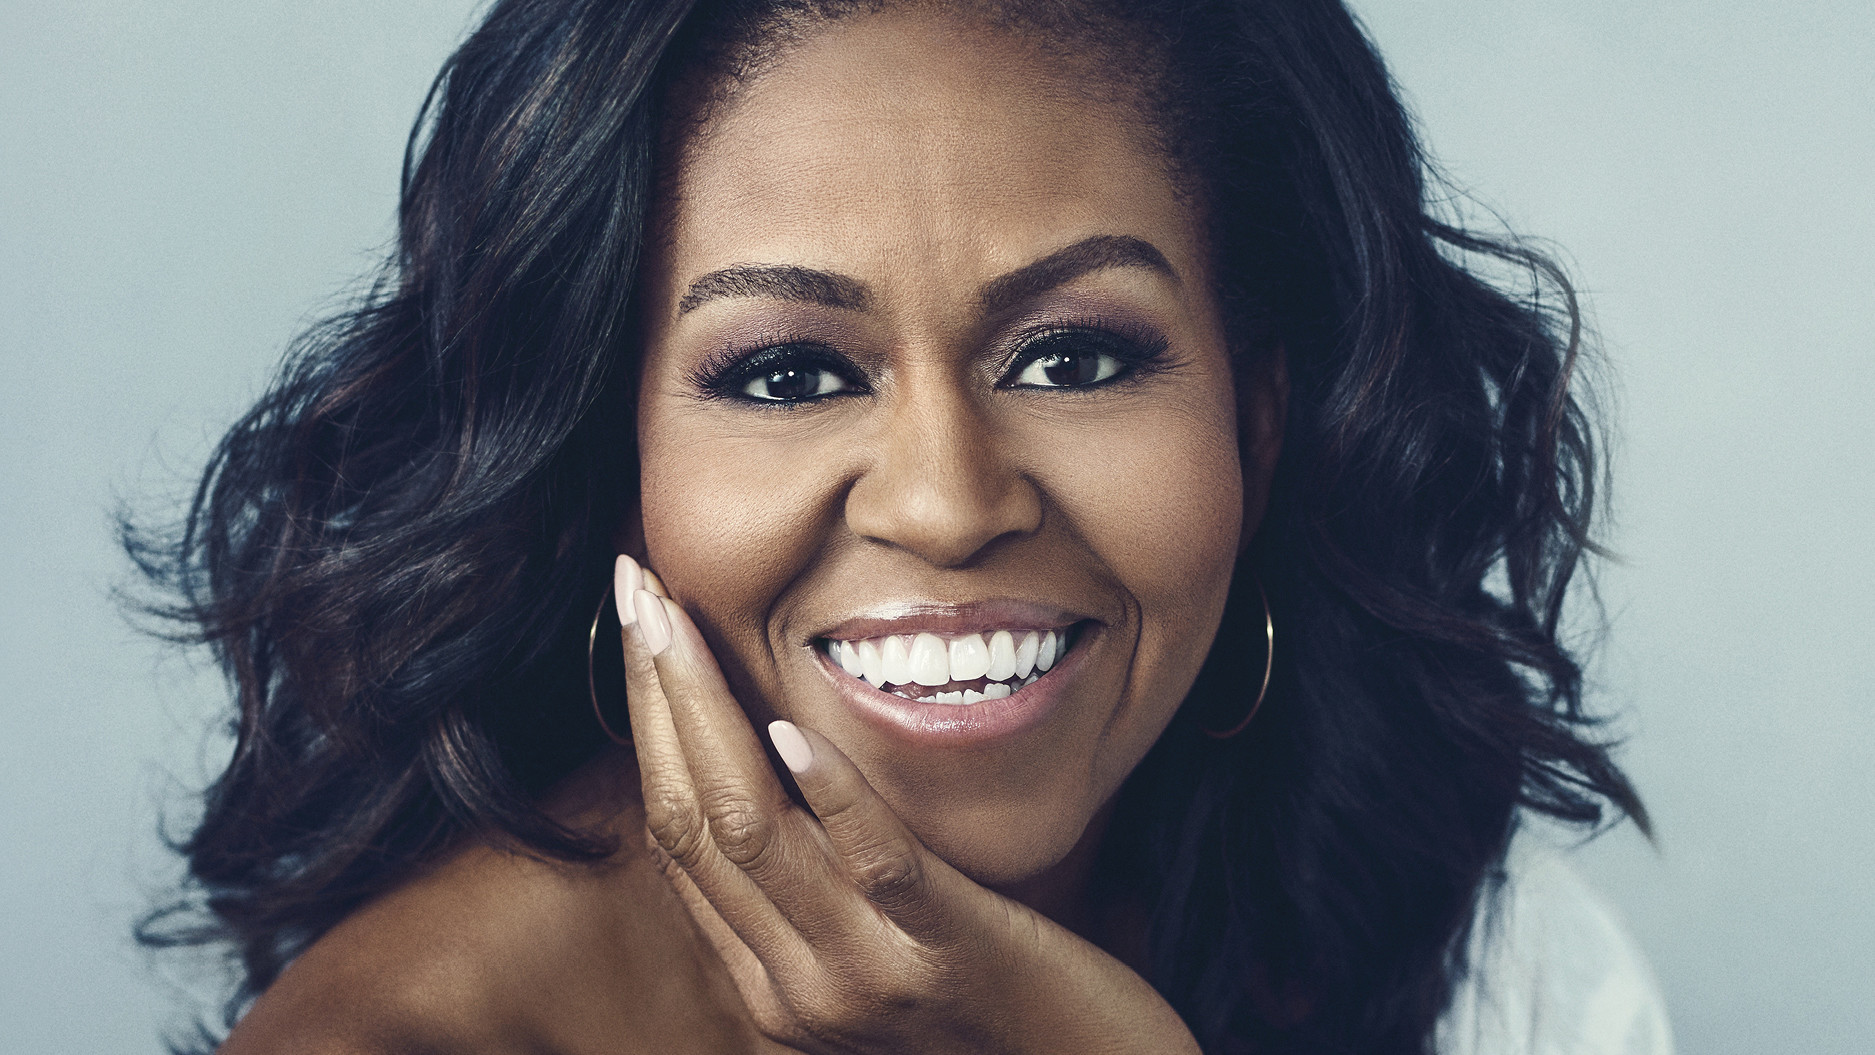 Book Cover White Jeans : Michelle obama reveals the cover for her upcoming memoir